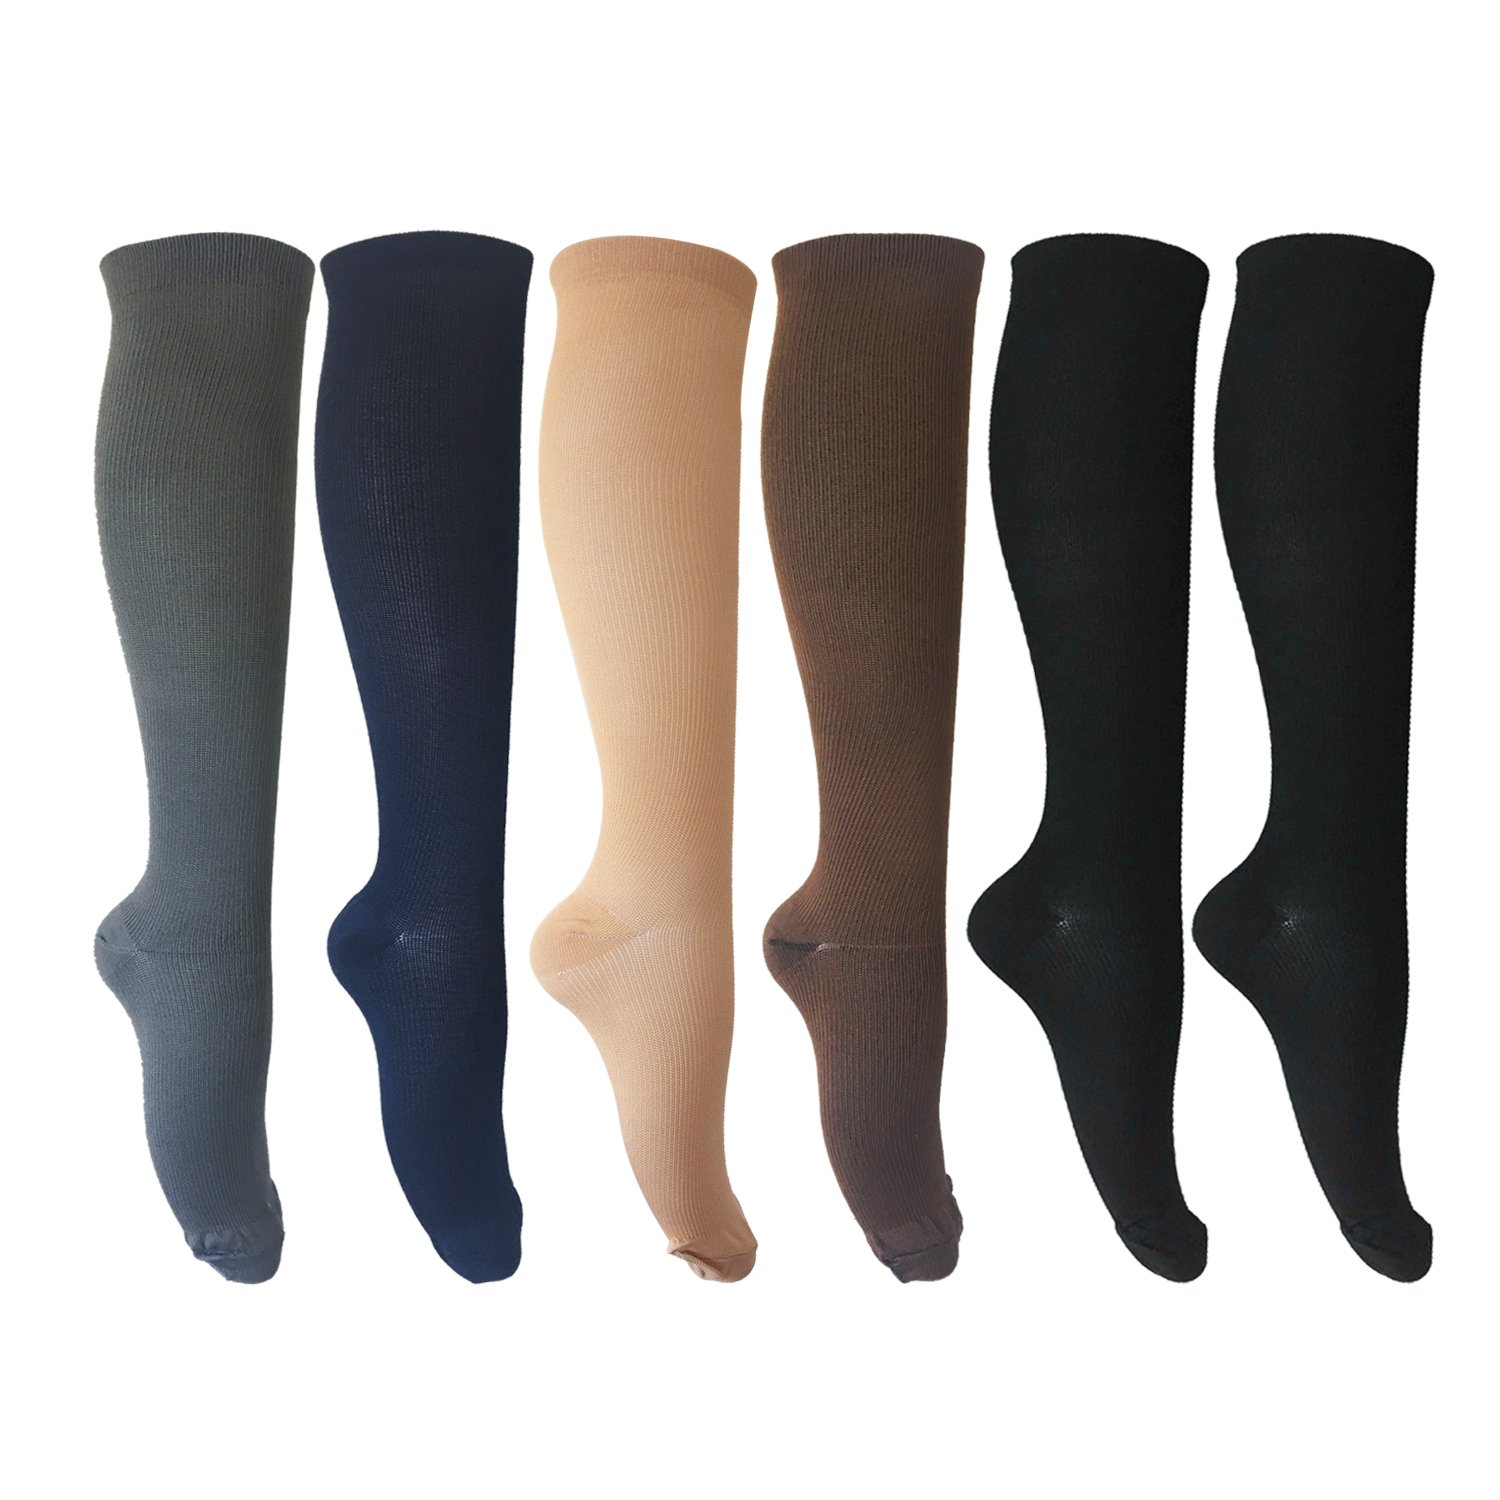 MIXSNOW 6 Pairs of Compression Socks for Men and Women for Running, Nurses, Shin Splints, Travel, Flight, Pregnancy & Maternity Large/X-Large Assorted 2 by MIXSNOW